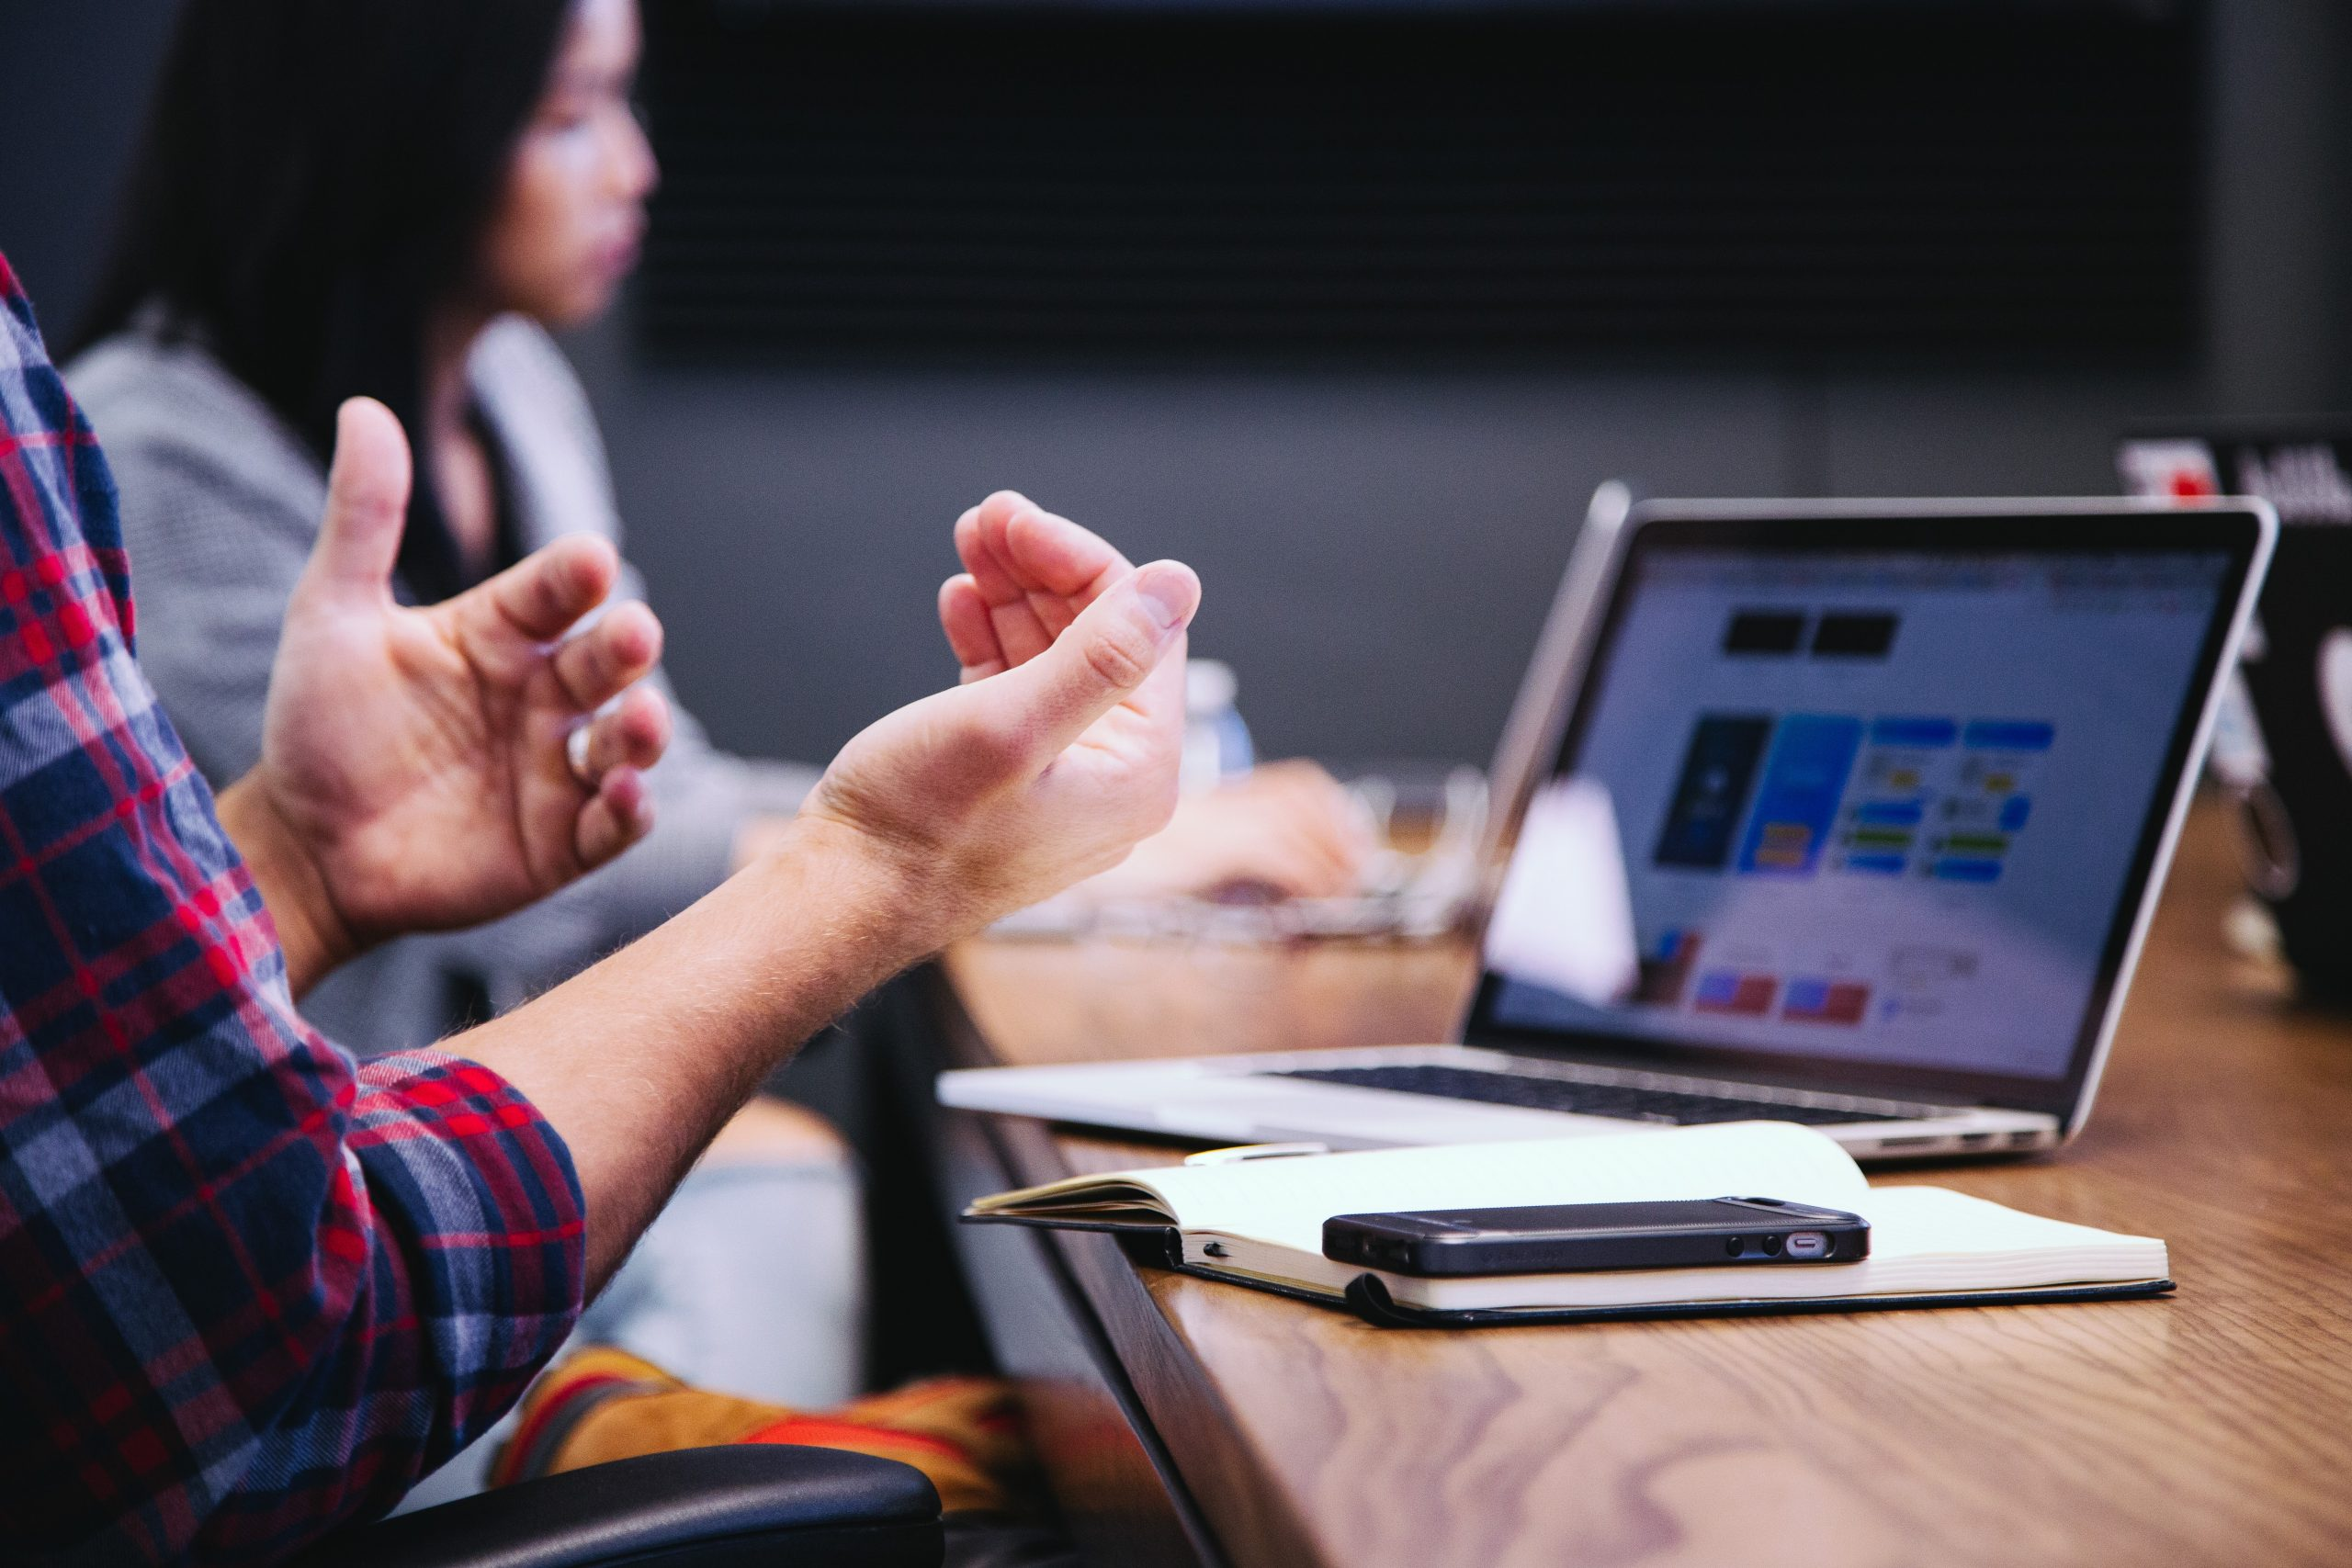 exasperated hands in front of a laptop after ignoring interview red flags